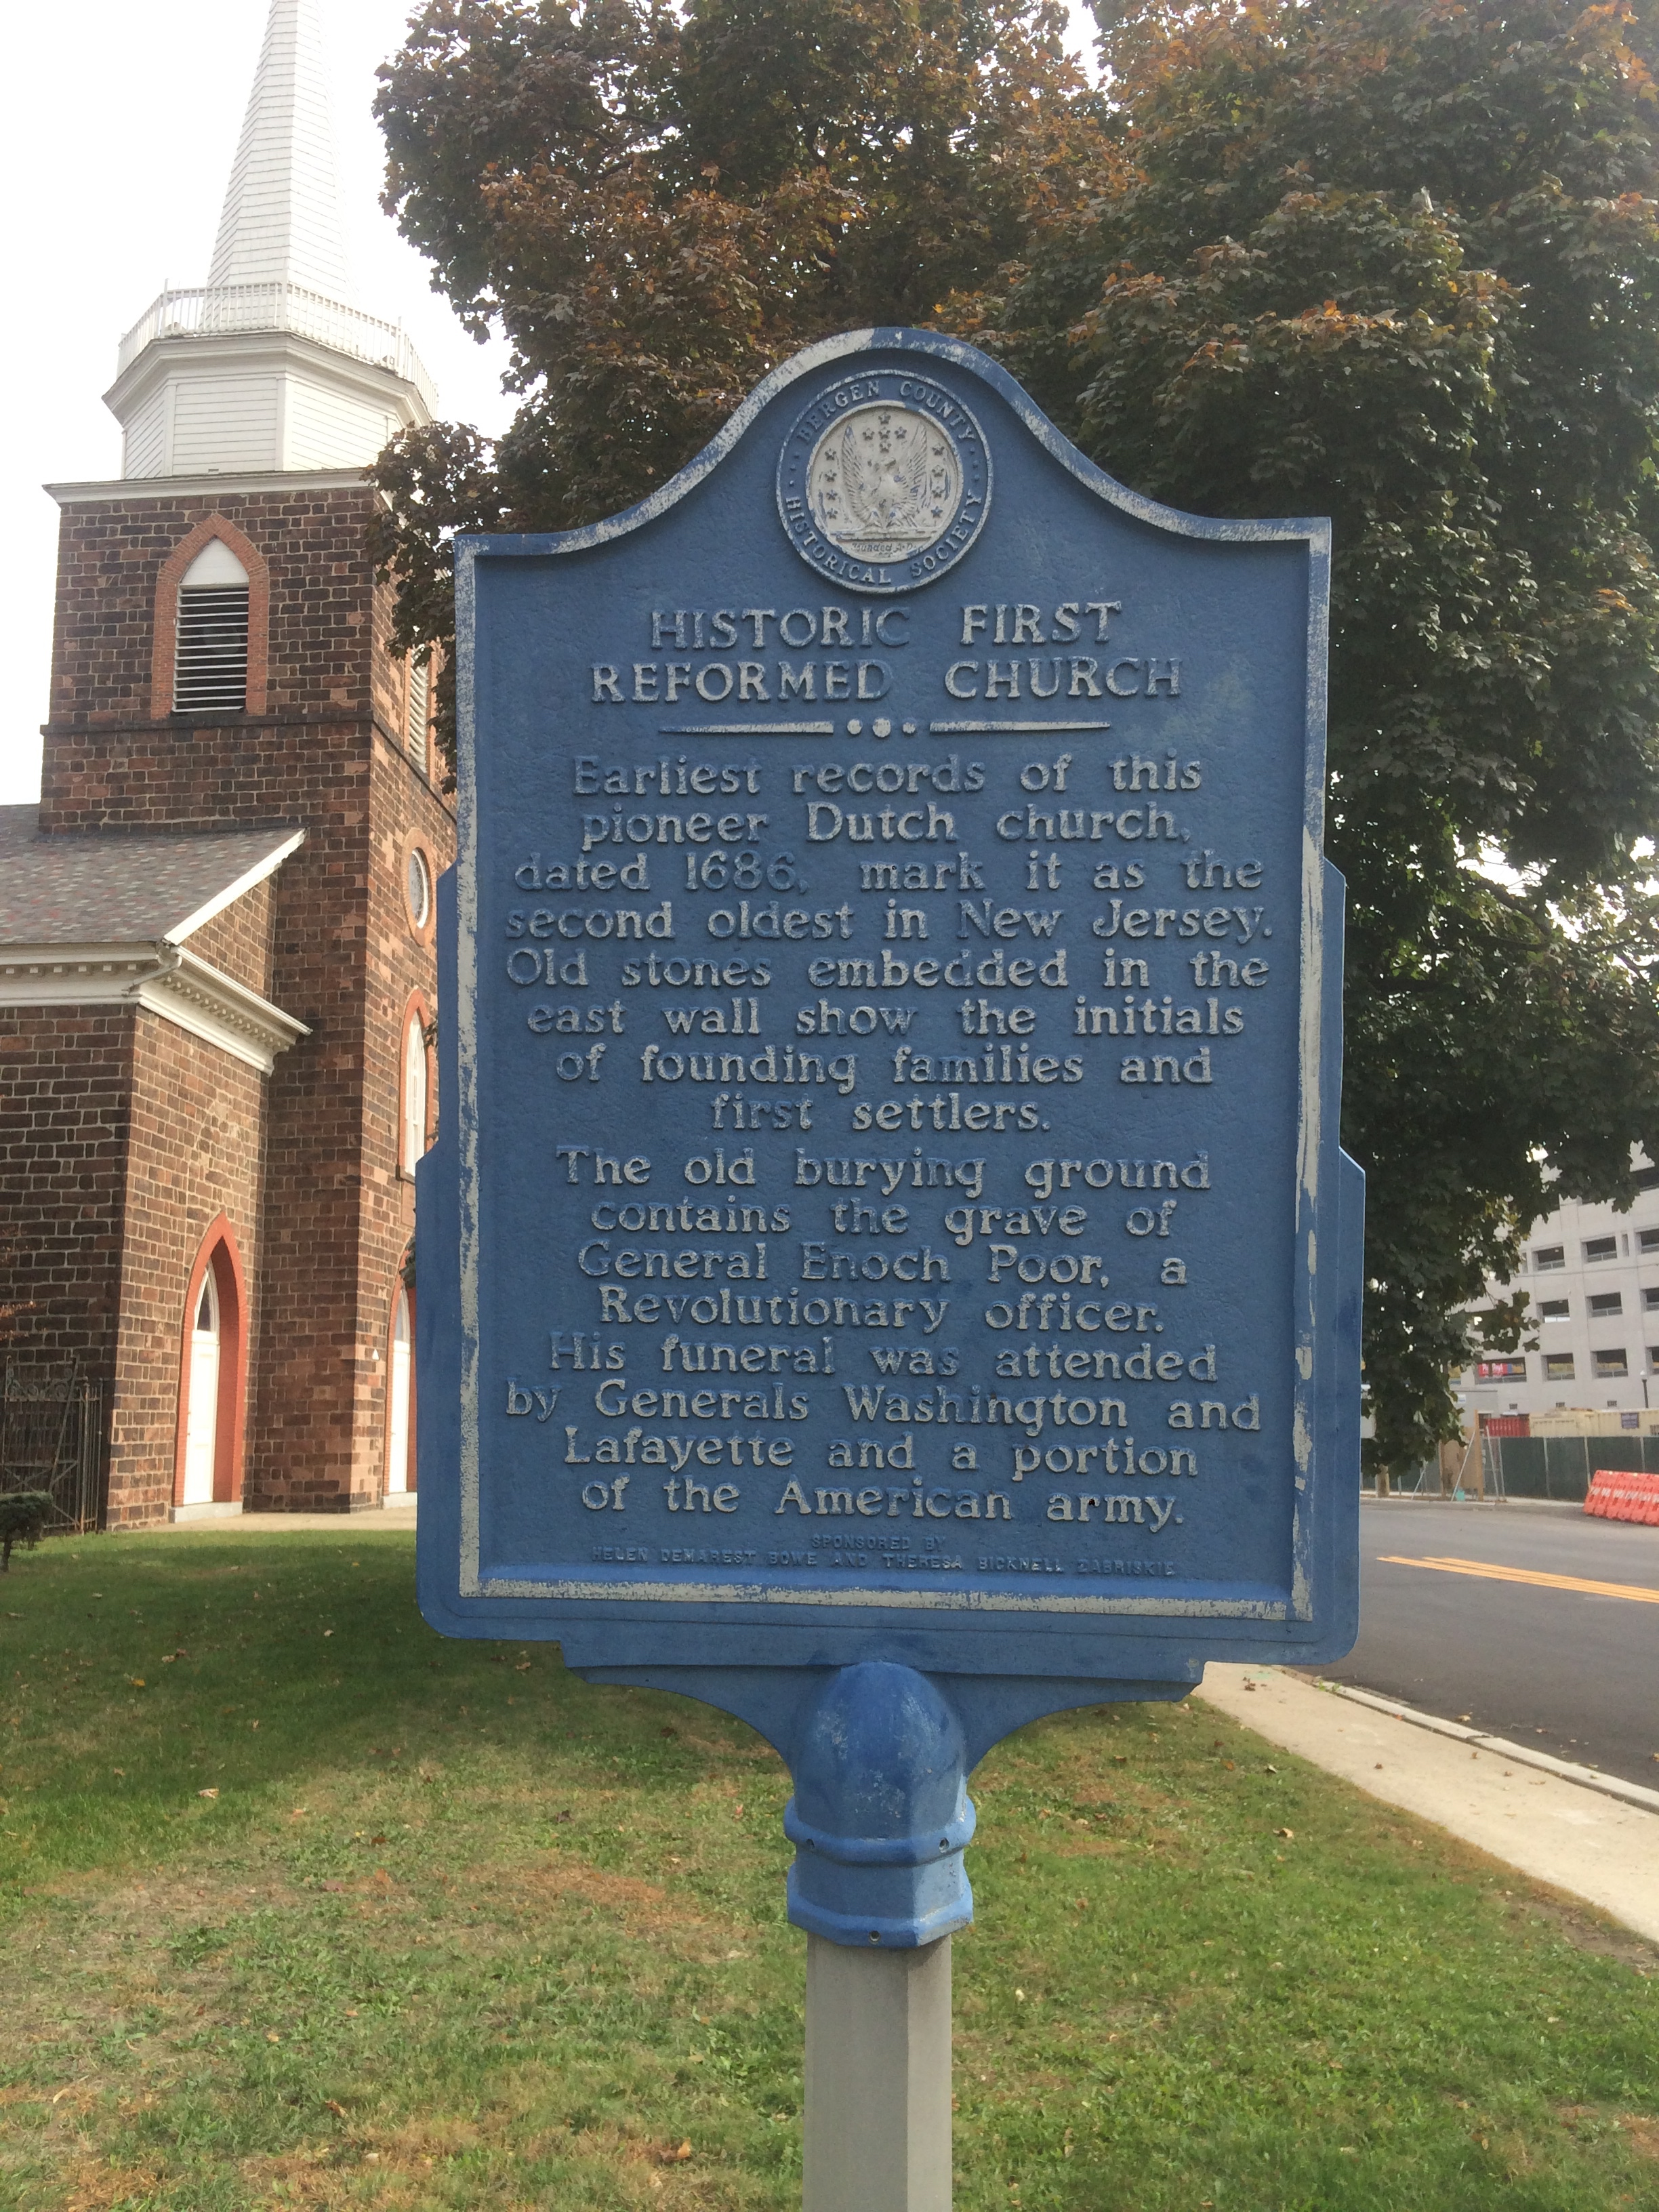 Historic marker. (Photo credit: Angela Garra 10/27/2015)